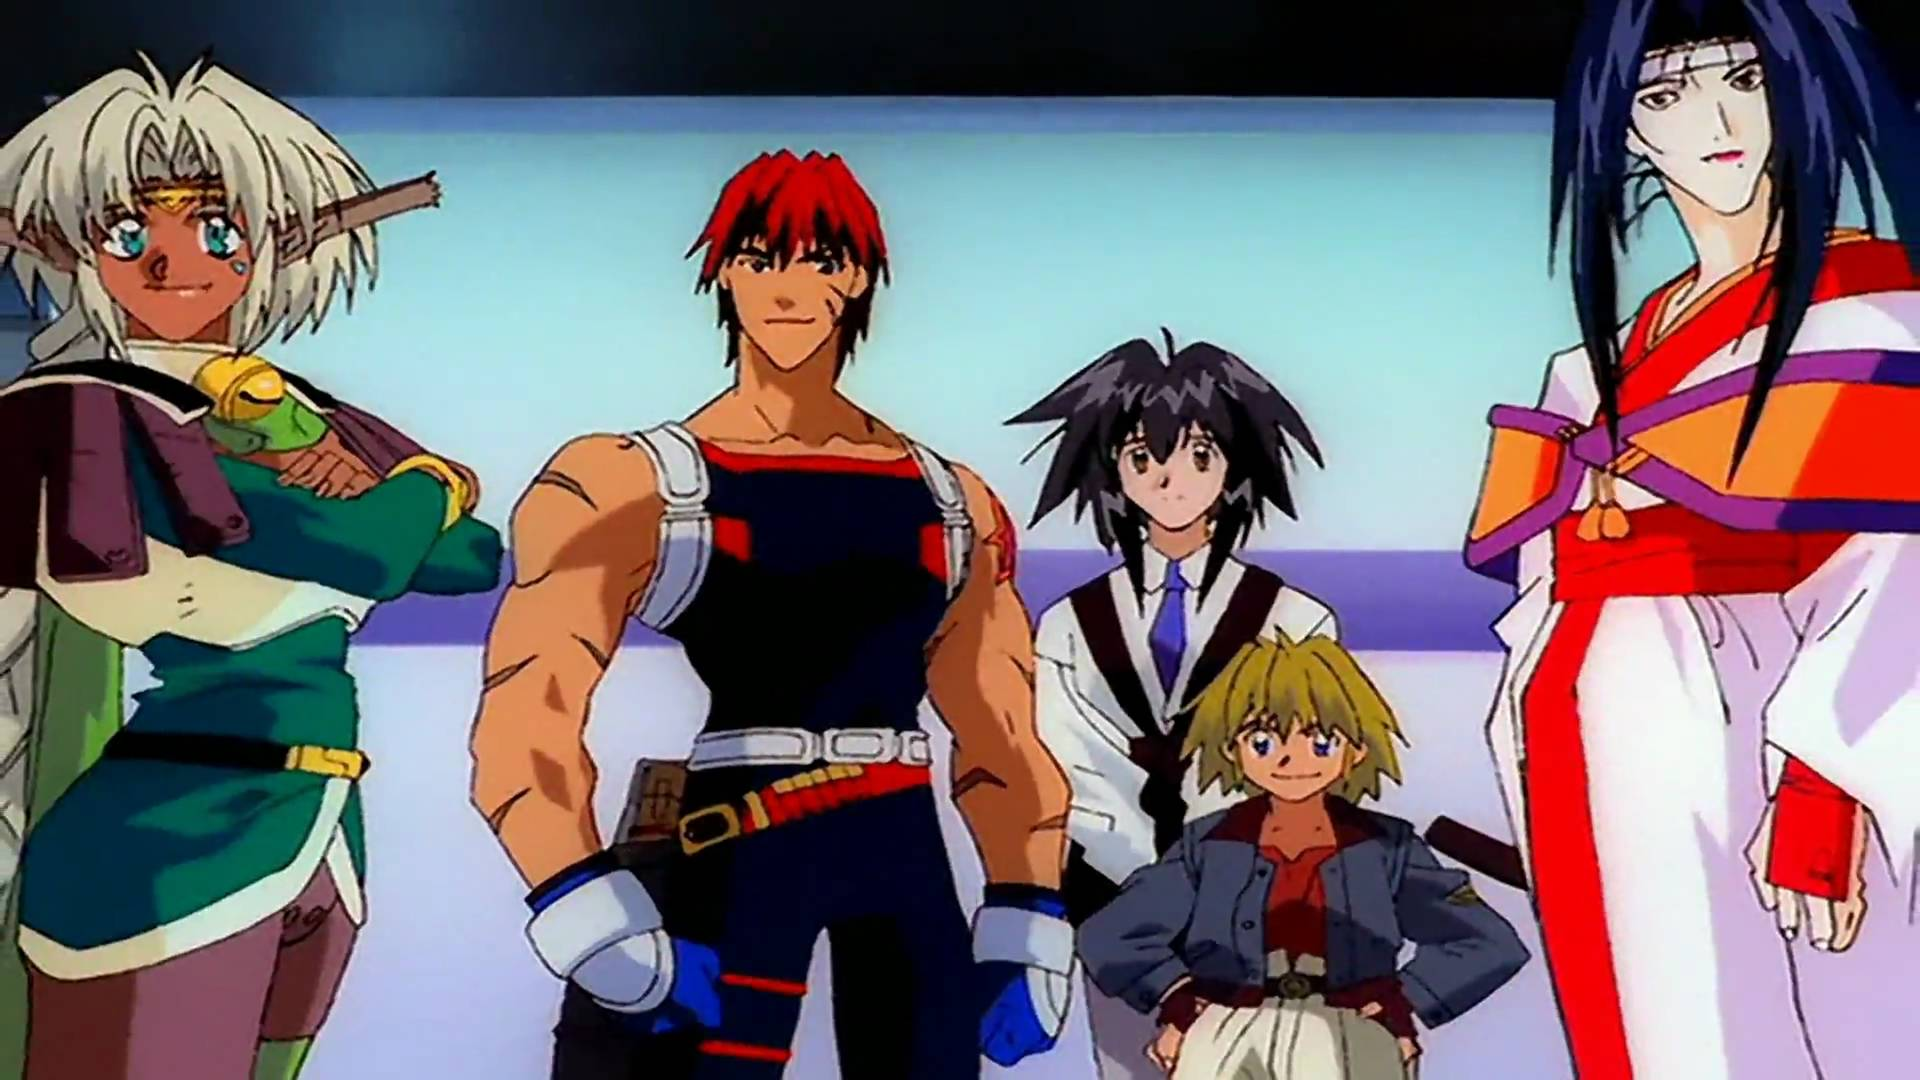 Anime Characters 90s : Bpl anime club outlaw star at bristol public library